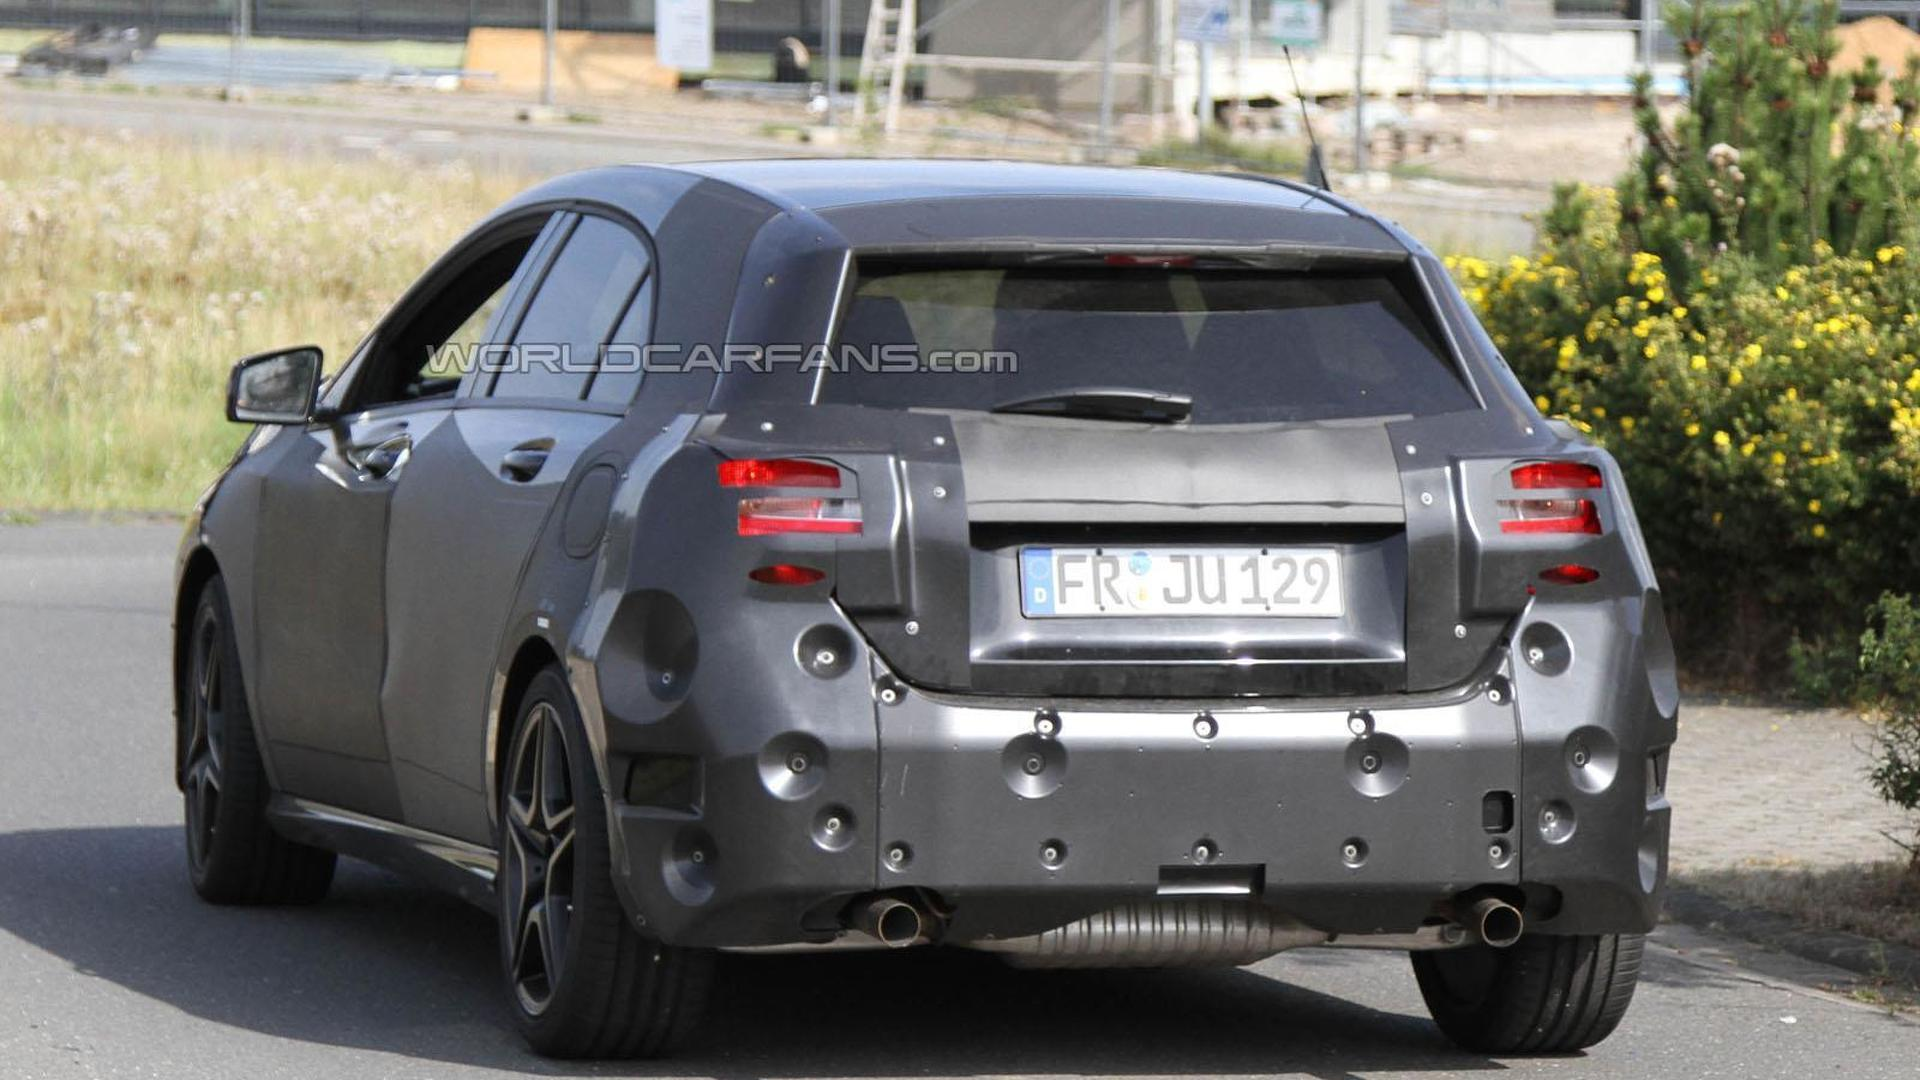 2013 Mercedes A-Class AMG spied for first time